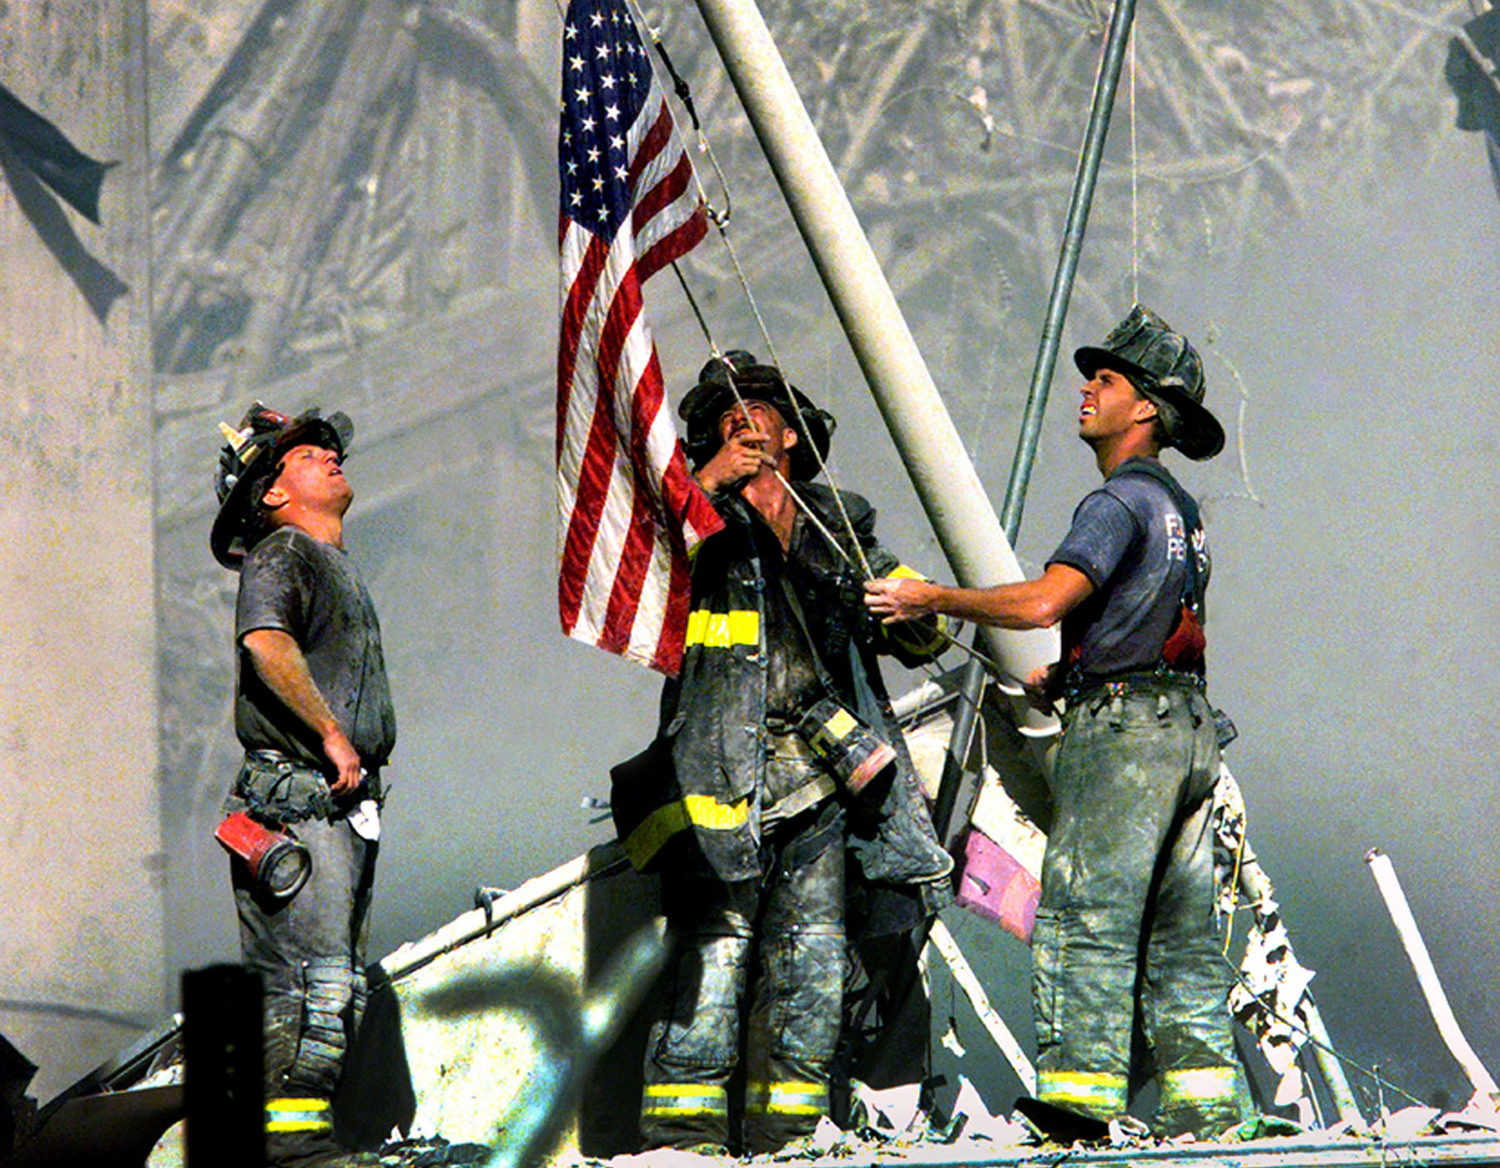 [Firefighters raising the American flag after the 9/11 attacks]